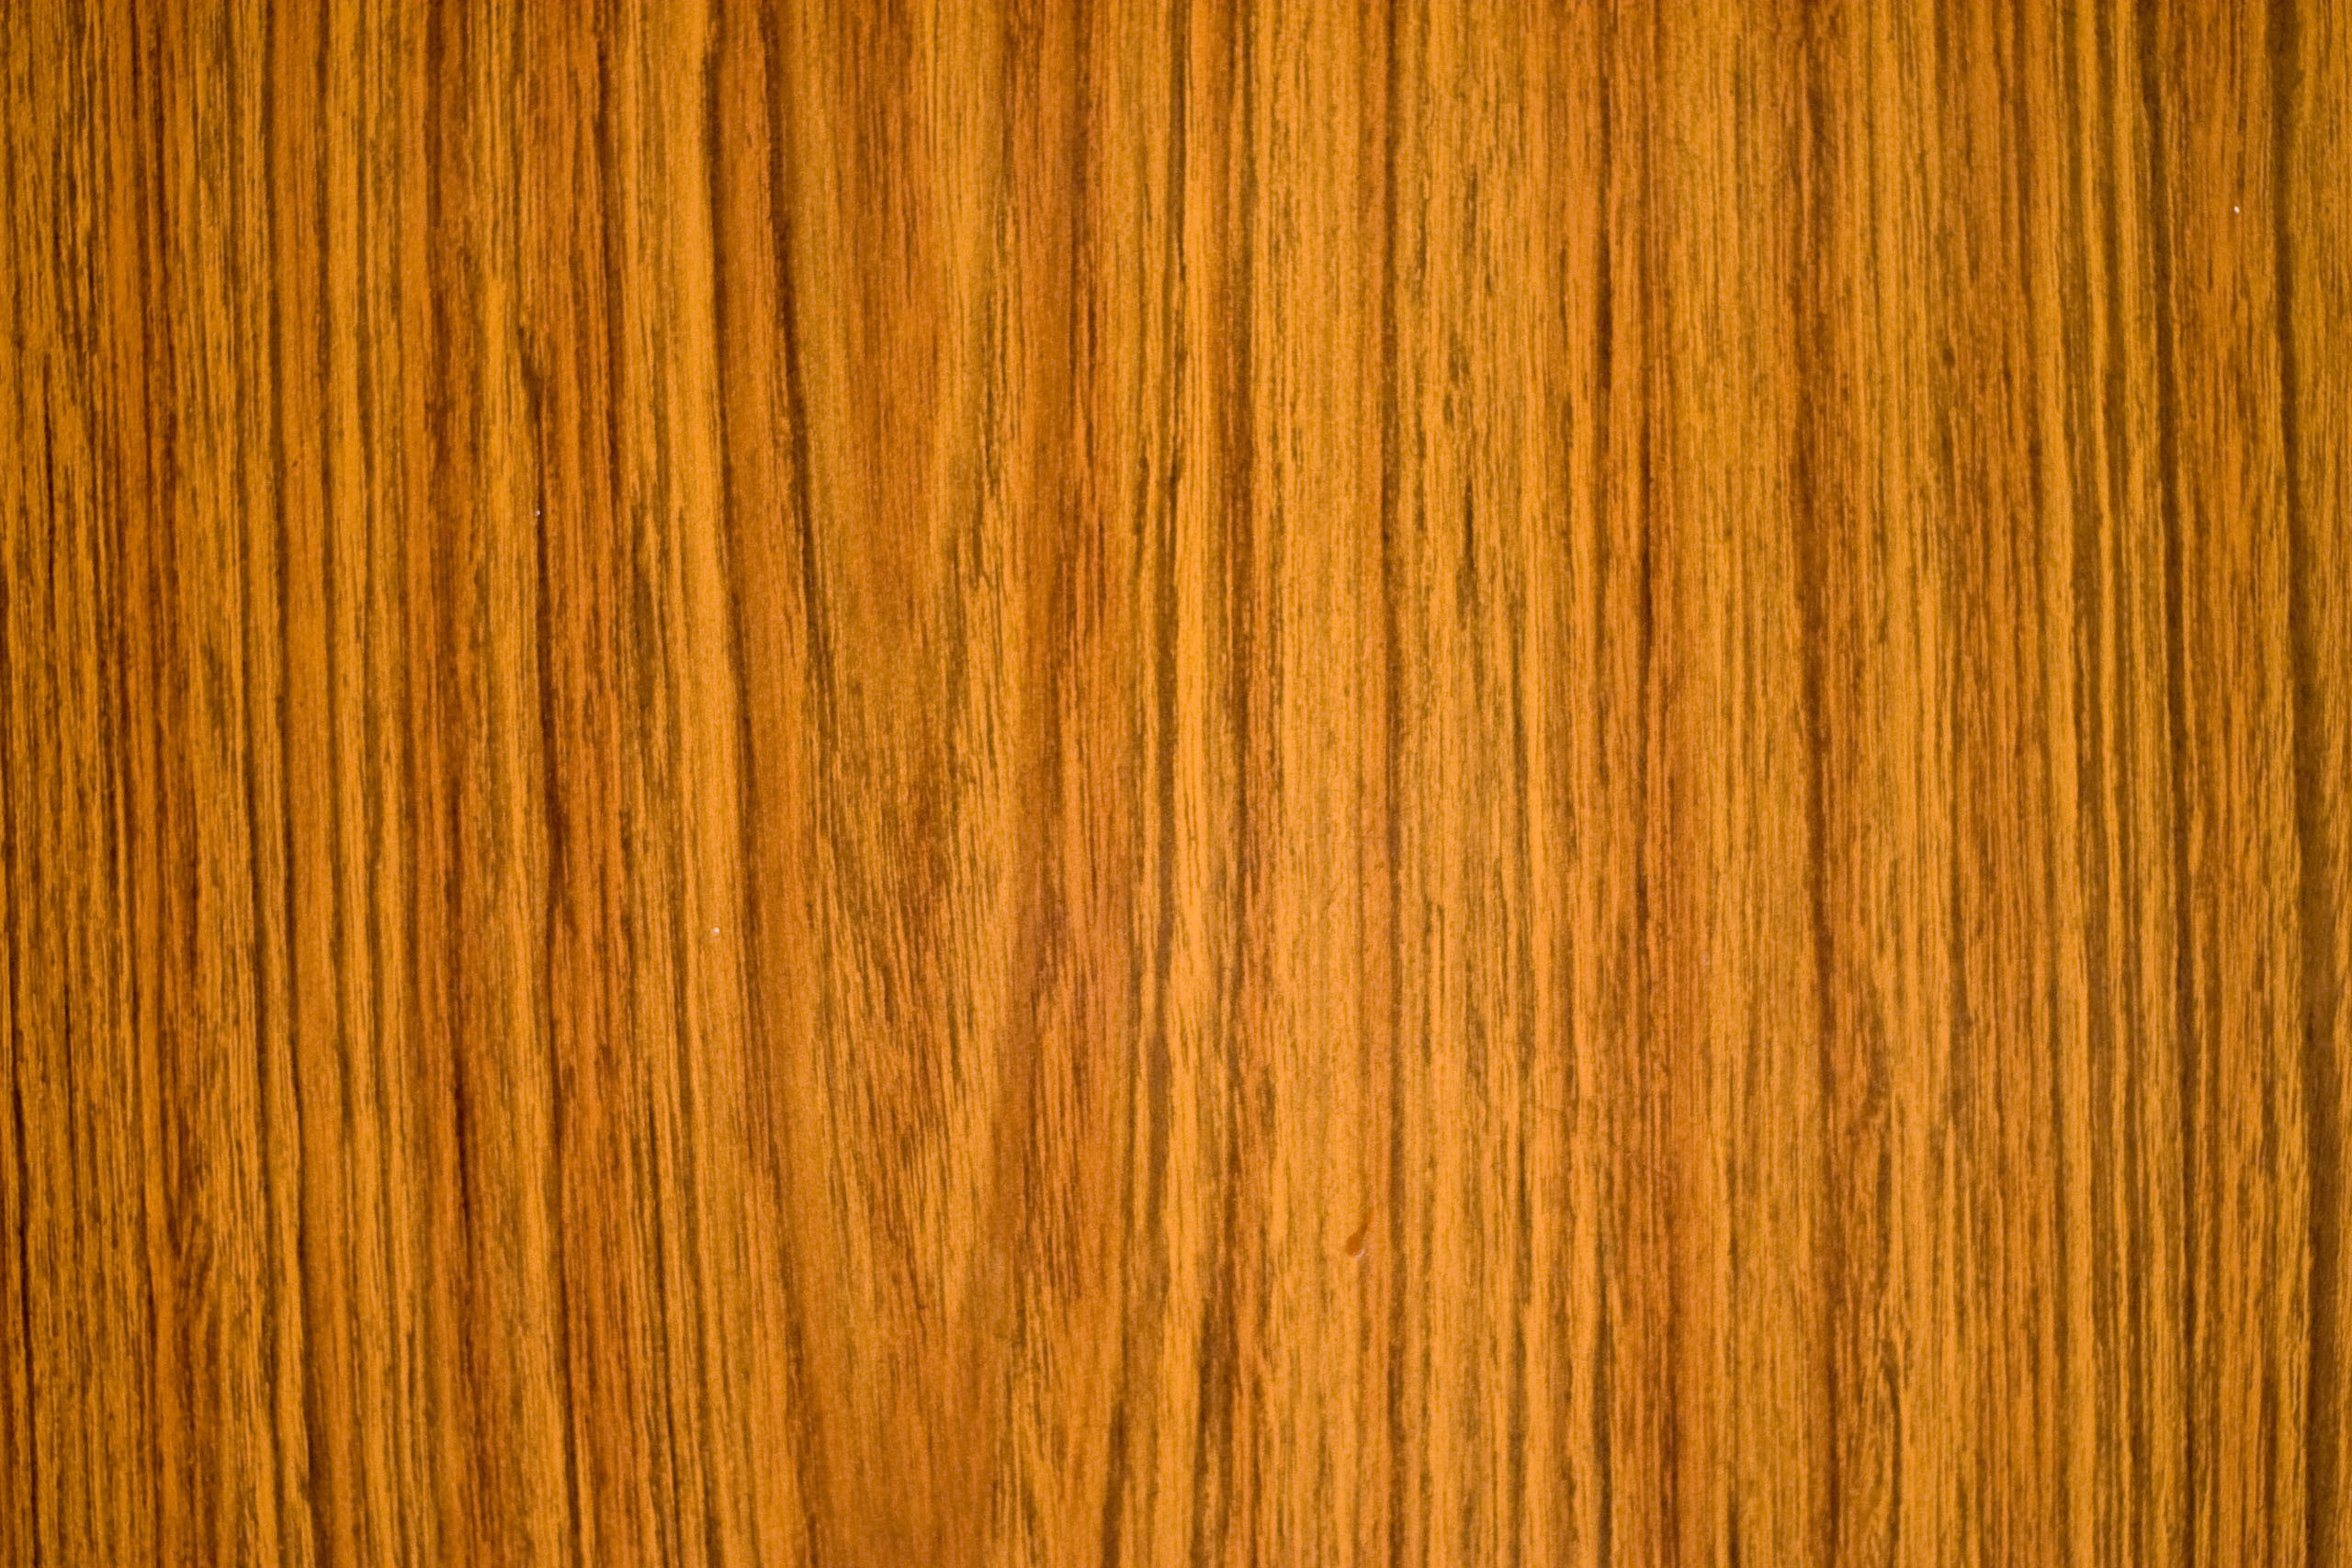 Wooden Pictures Wood Grain Wallpapers Hd 68 43 Background Pictures